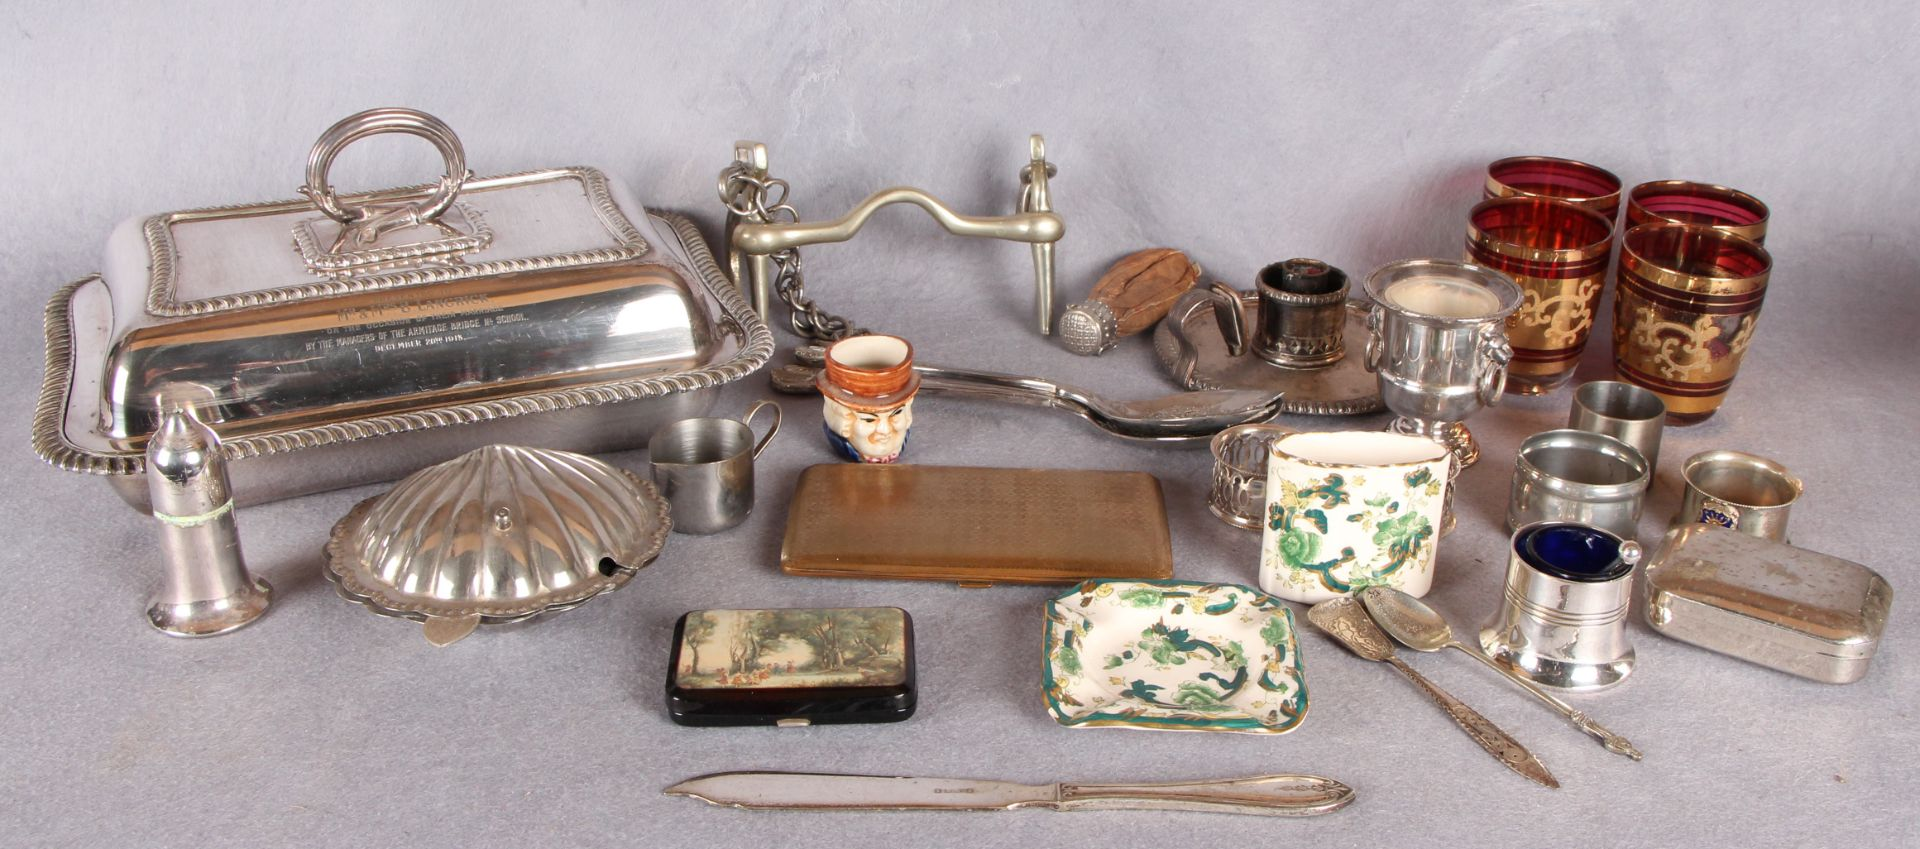 Lot 16 - Plated wares including rectangular entree dish and cover with detachable handle, snaffle bit,